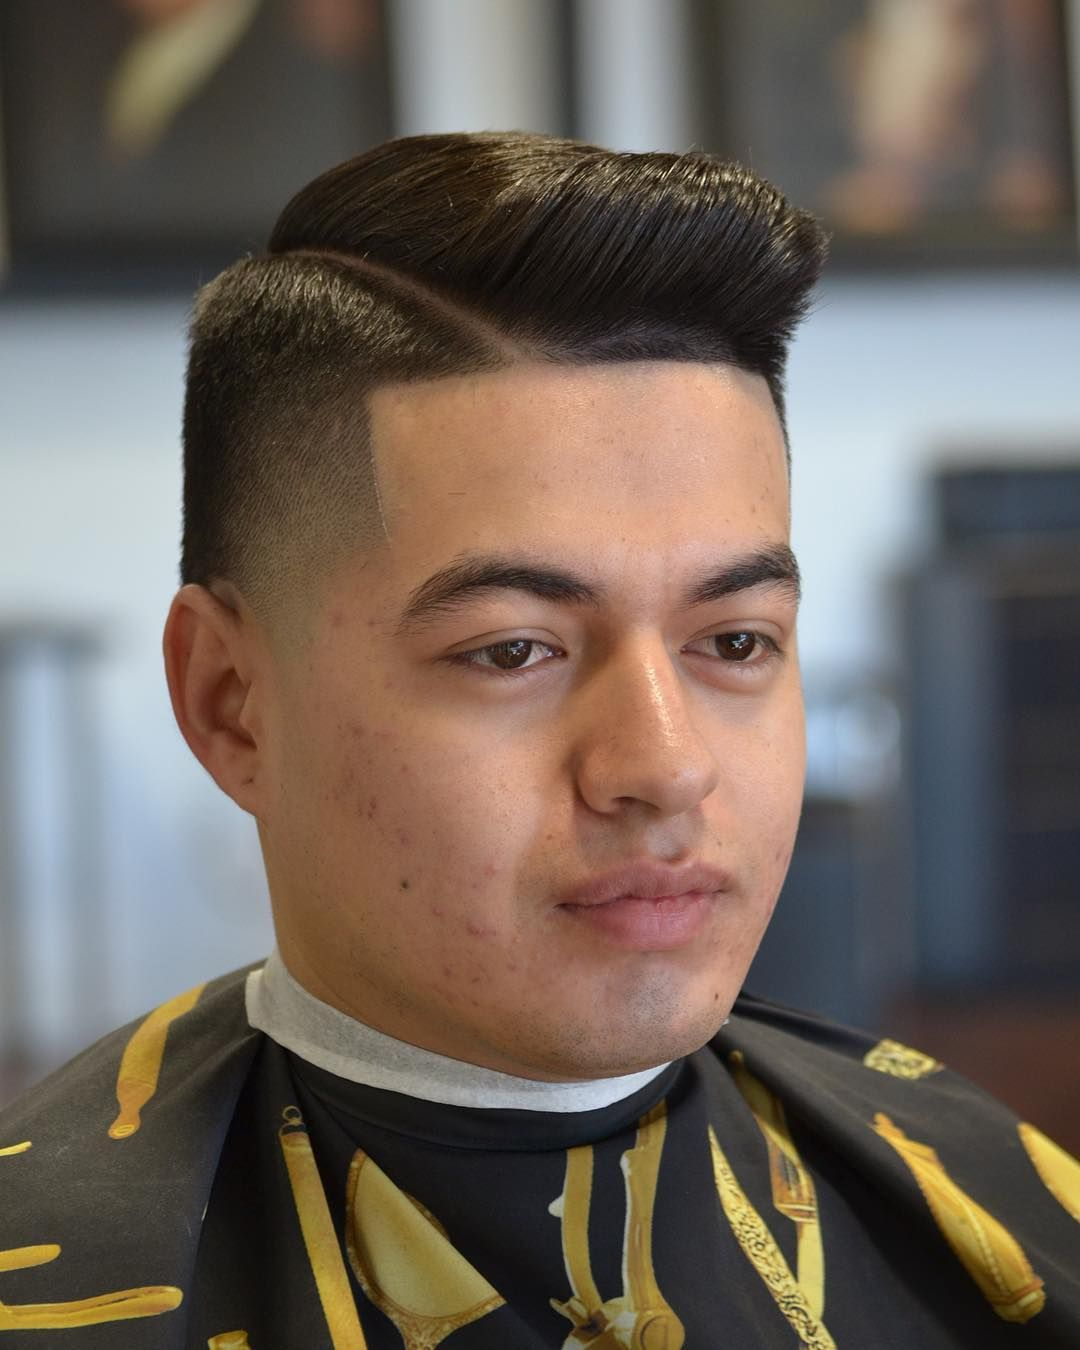 Haircut styles for men 2018  popular new hairstyles  haircuts for men